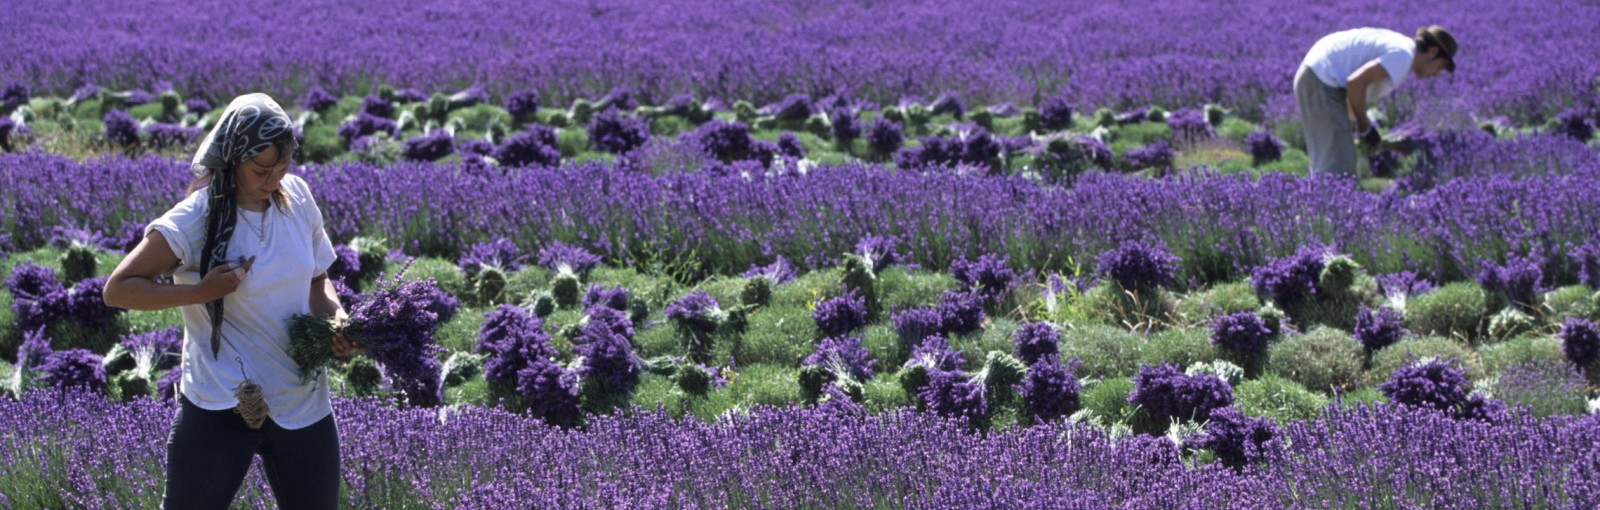 Tours Provence - Full days - Day tours from Paris